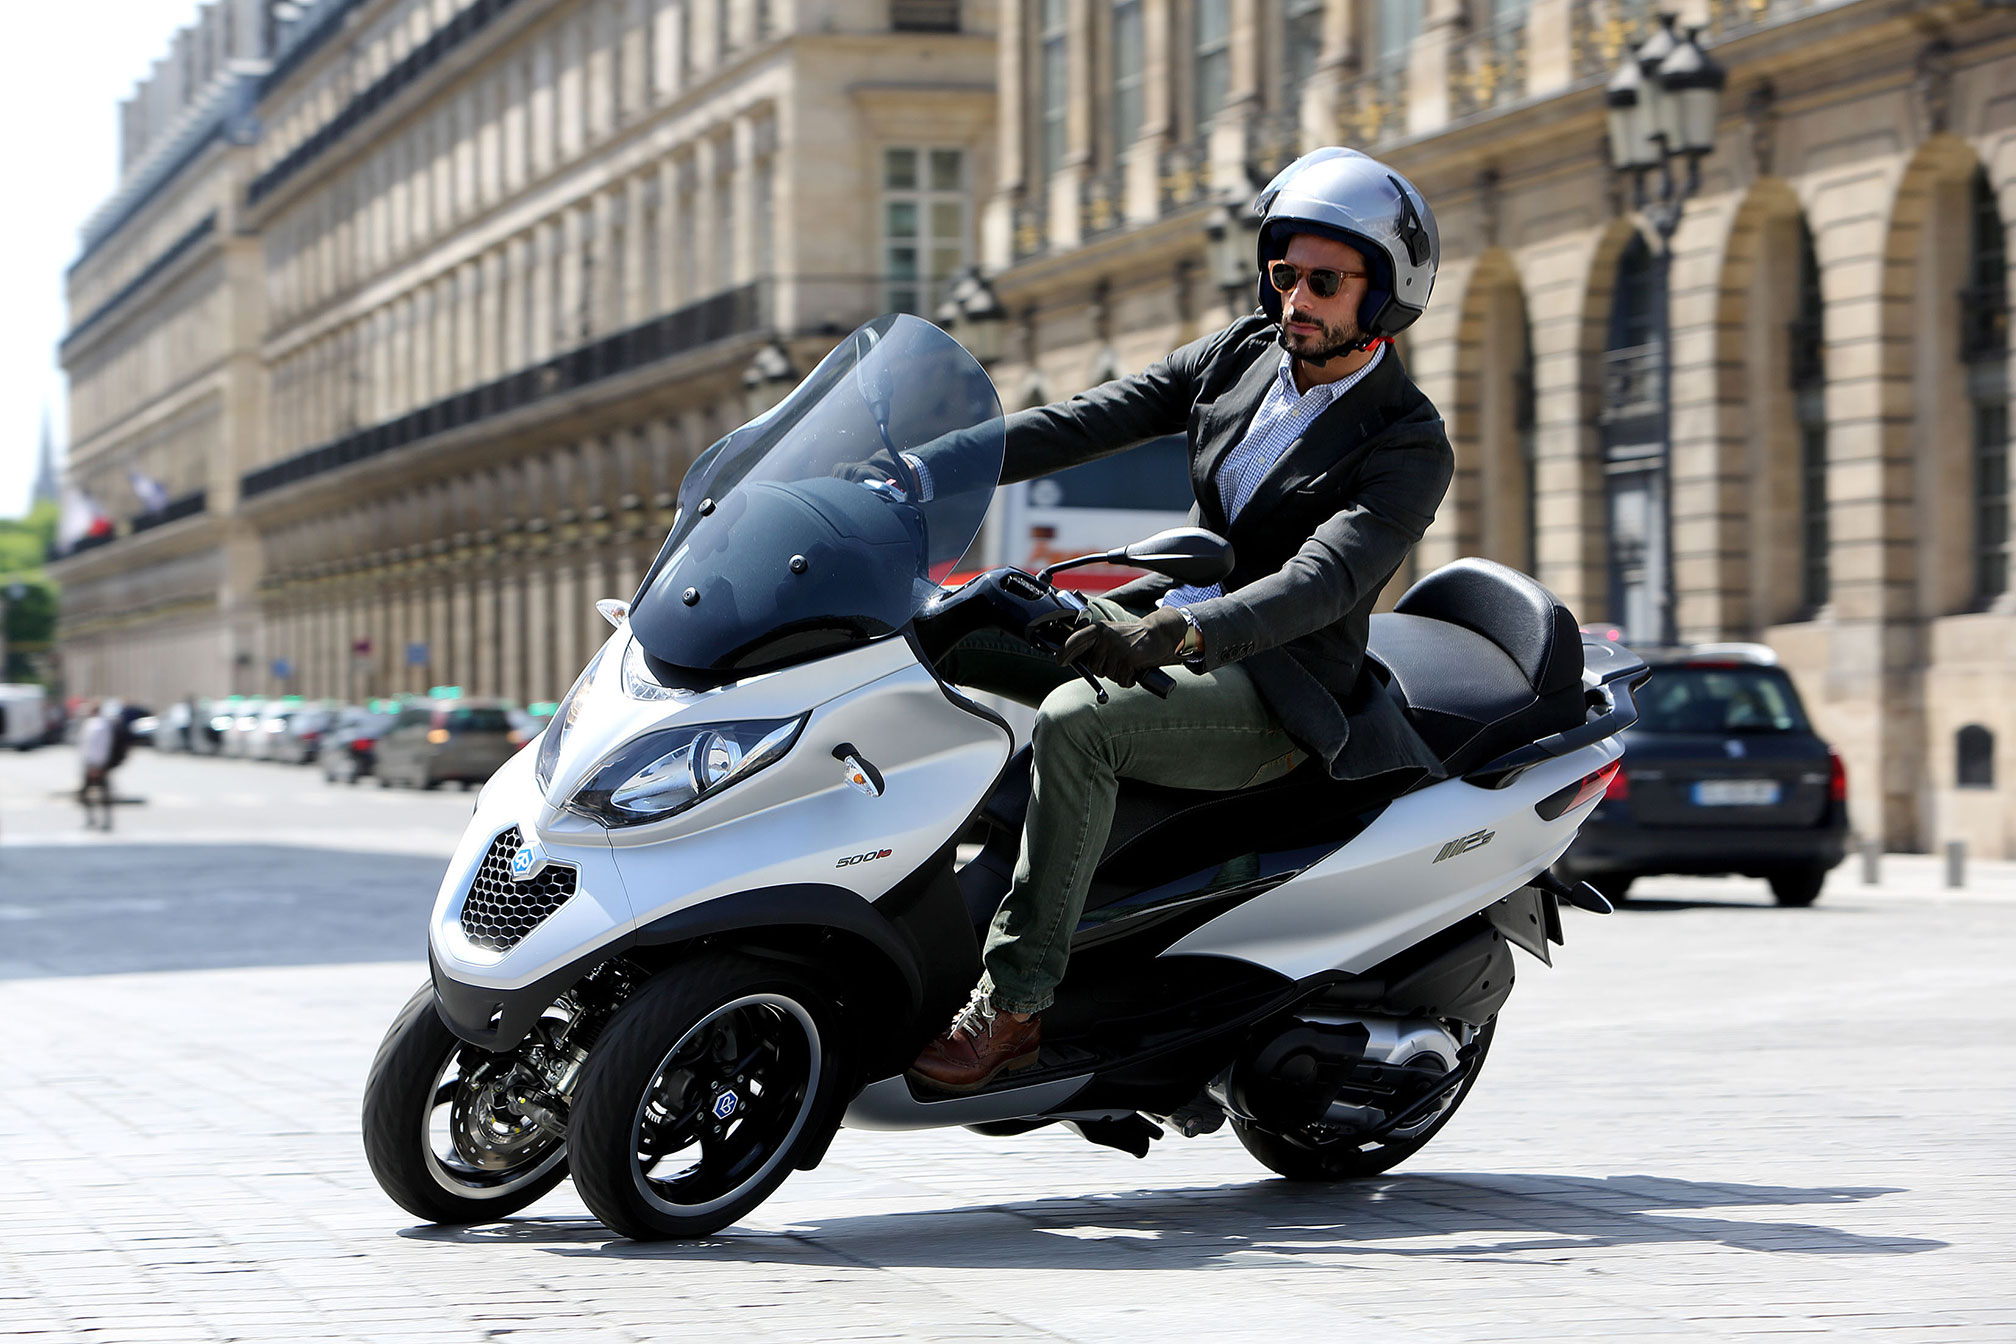 2016 Piaggio Mp3 500 Sport Abs Review Royal Enfield Bullet 350 500cc Usa Spec Colour Wiring Diagram